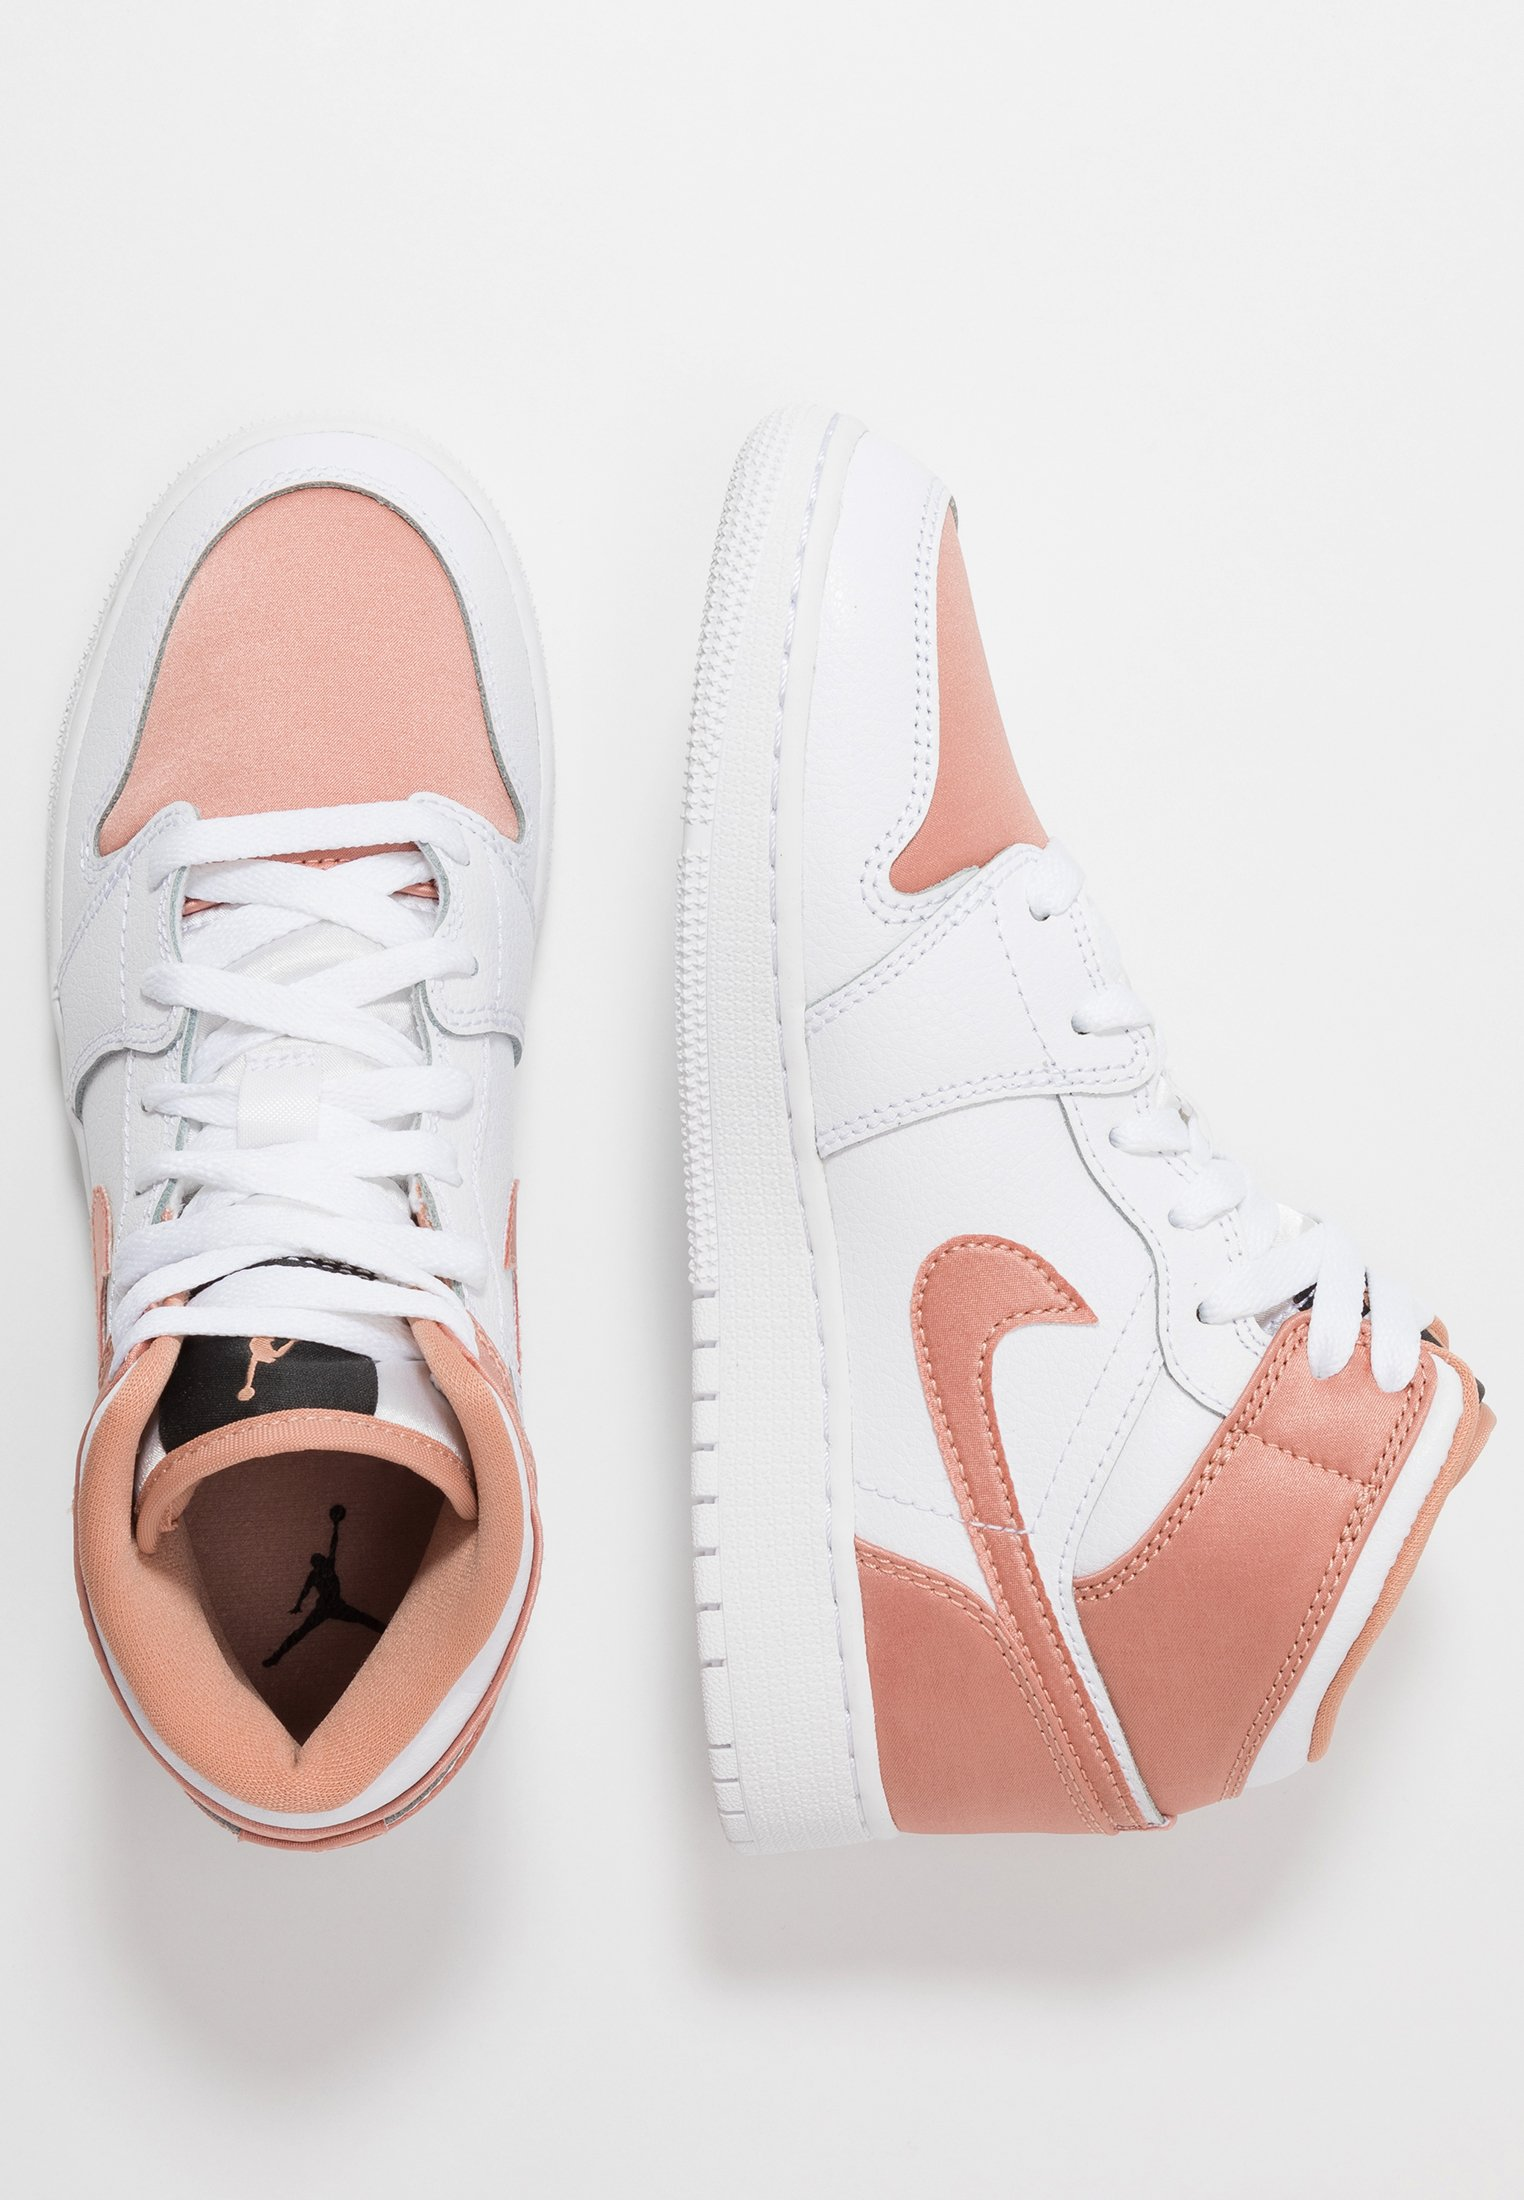 AIR 1 MID UNISEX - Scarpe da basket - white/rose gold/black